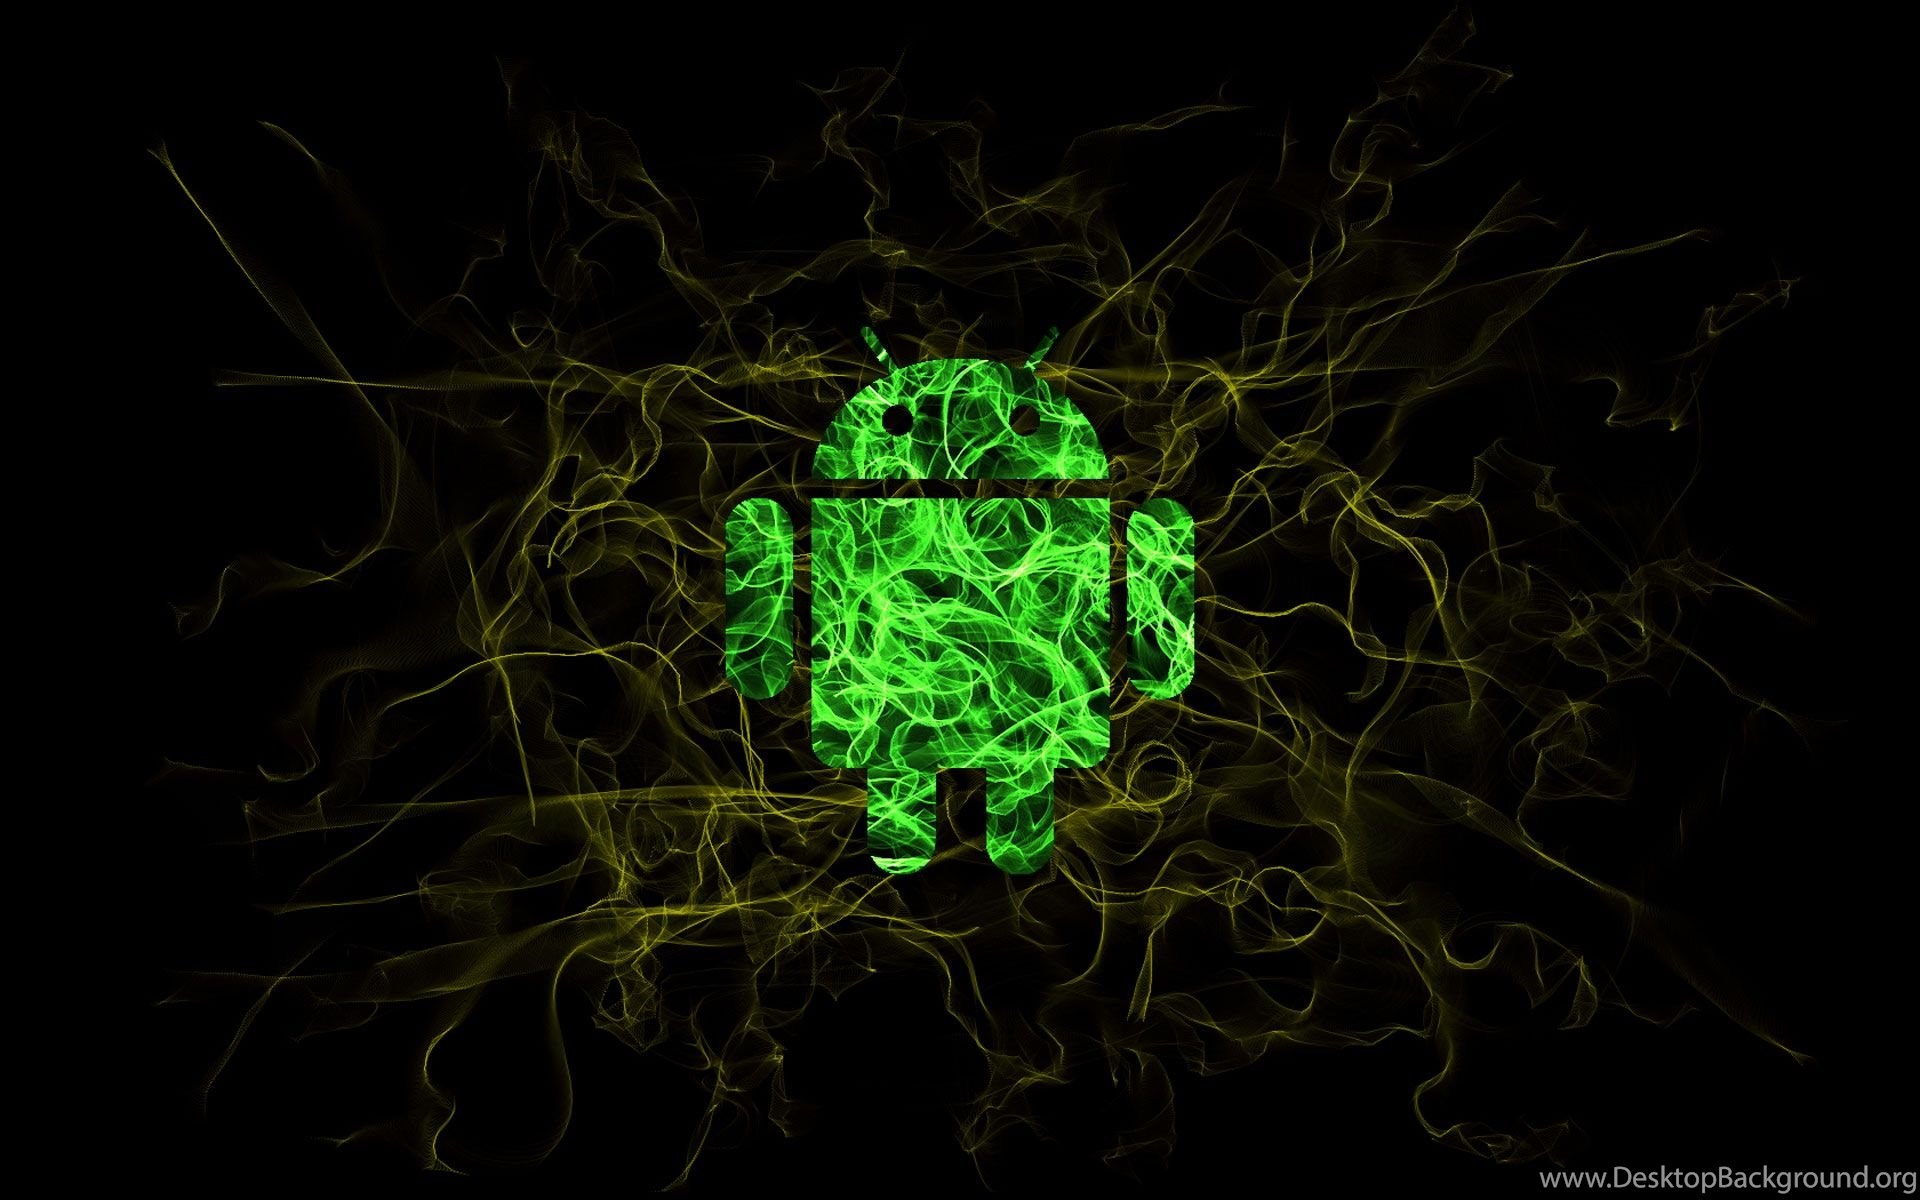 Free android wallpapers background themesg desktop background widescreen voltagebd Gallery